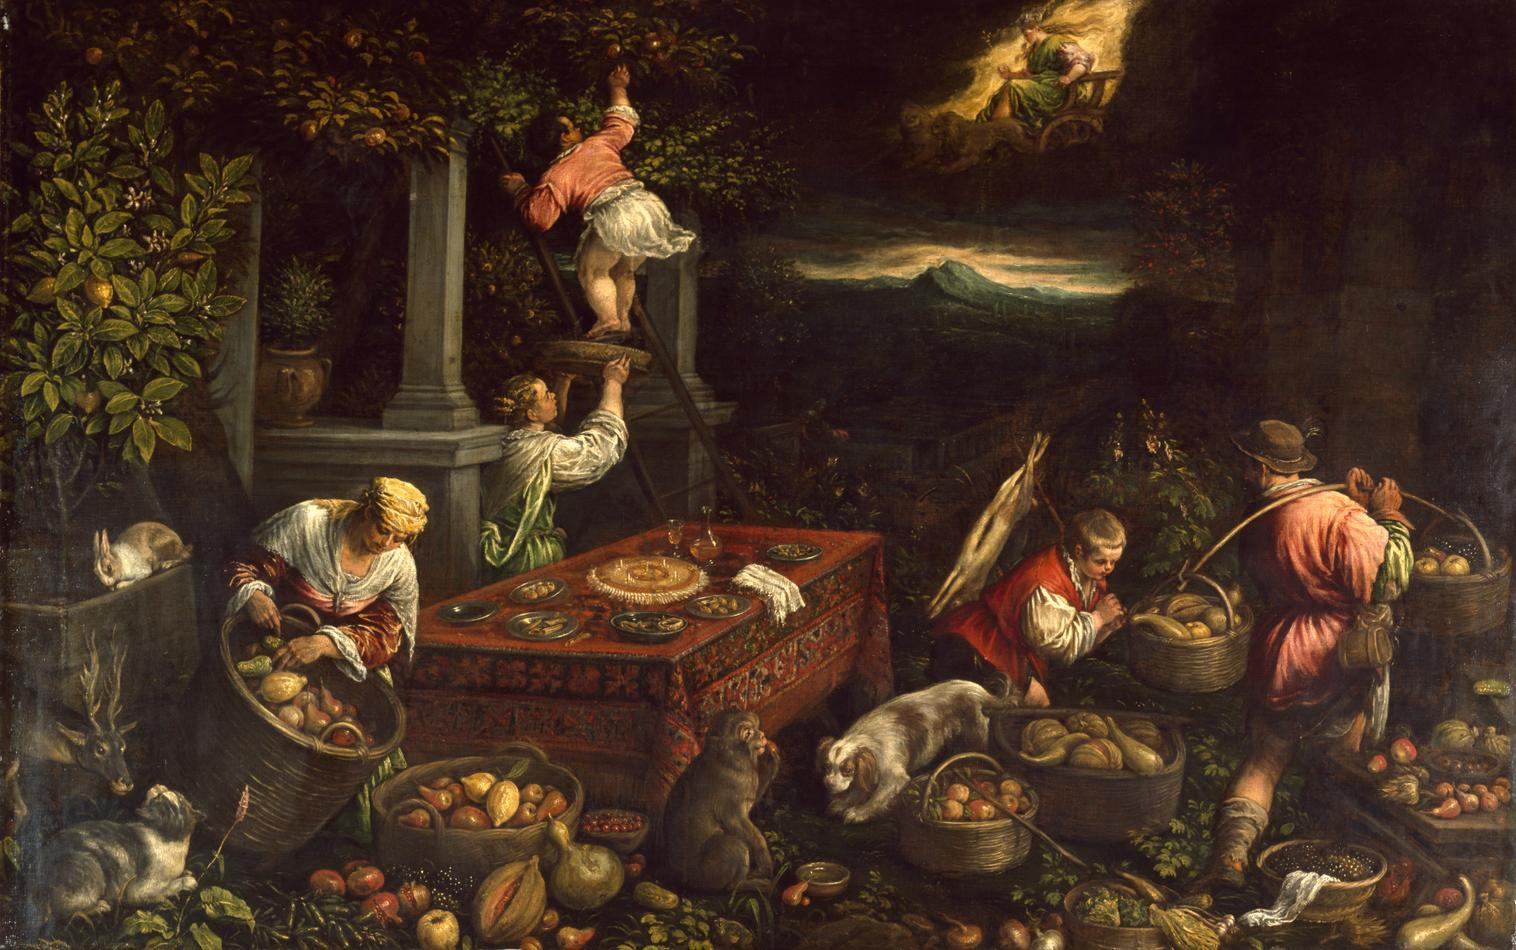 Leandro_Bassano_-_Allegory_of_the_Element_Earth_-_Walters_372363.jpg